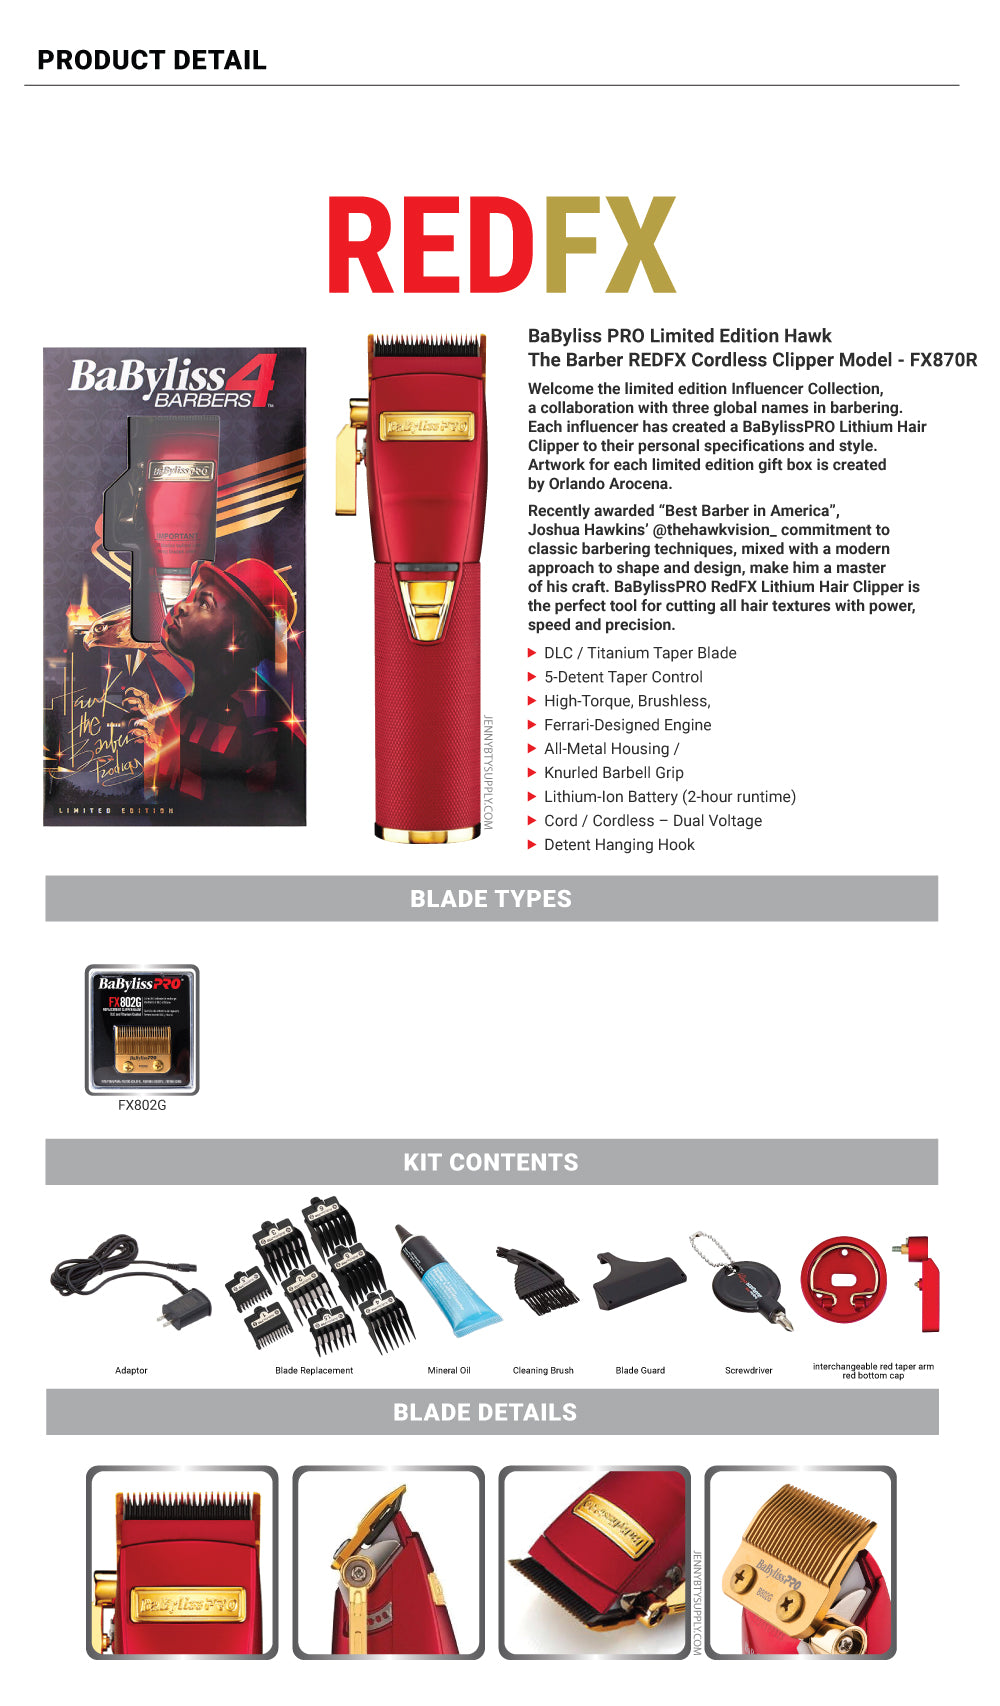 BaBylissPro Limited Edition Hawk The Barber RedFX Cordless Clipper